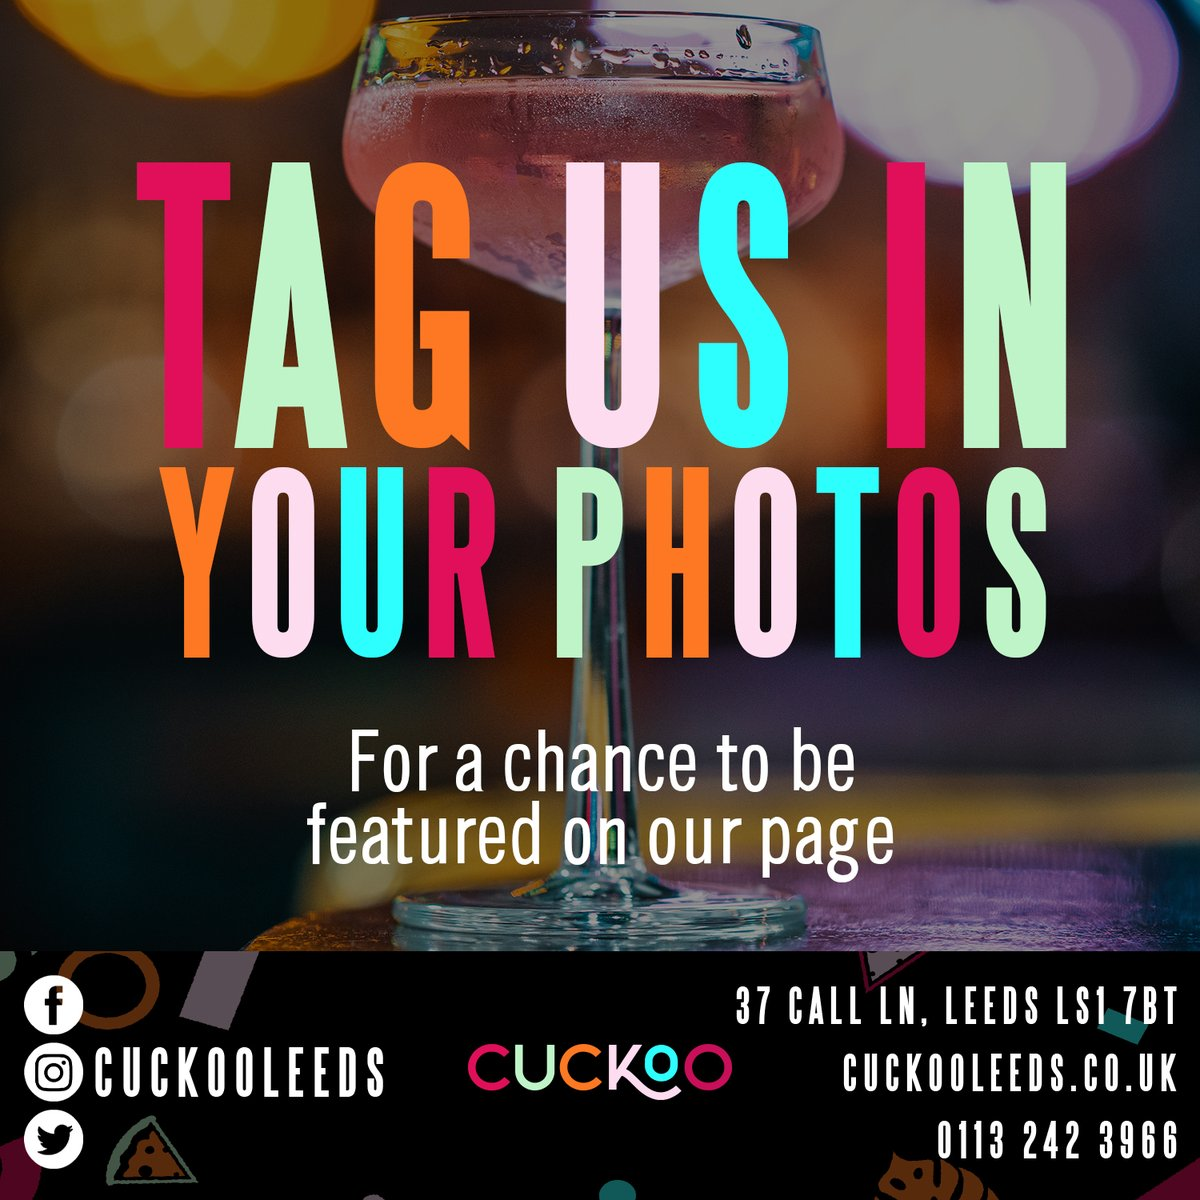 If you've enjoyed your visits with us then why not drop us a review on our Facebook page 🥰  Don't forget to tag us in any photos you've taken during your visits with us for a chance to be featured on our socials 📲  #Cuckoo #Leeds #CallLane #drinks #party #music #privatehire https://t.co/GNlqG31j8A